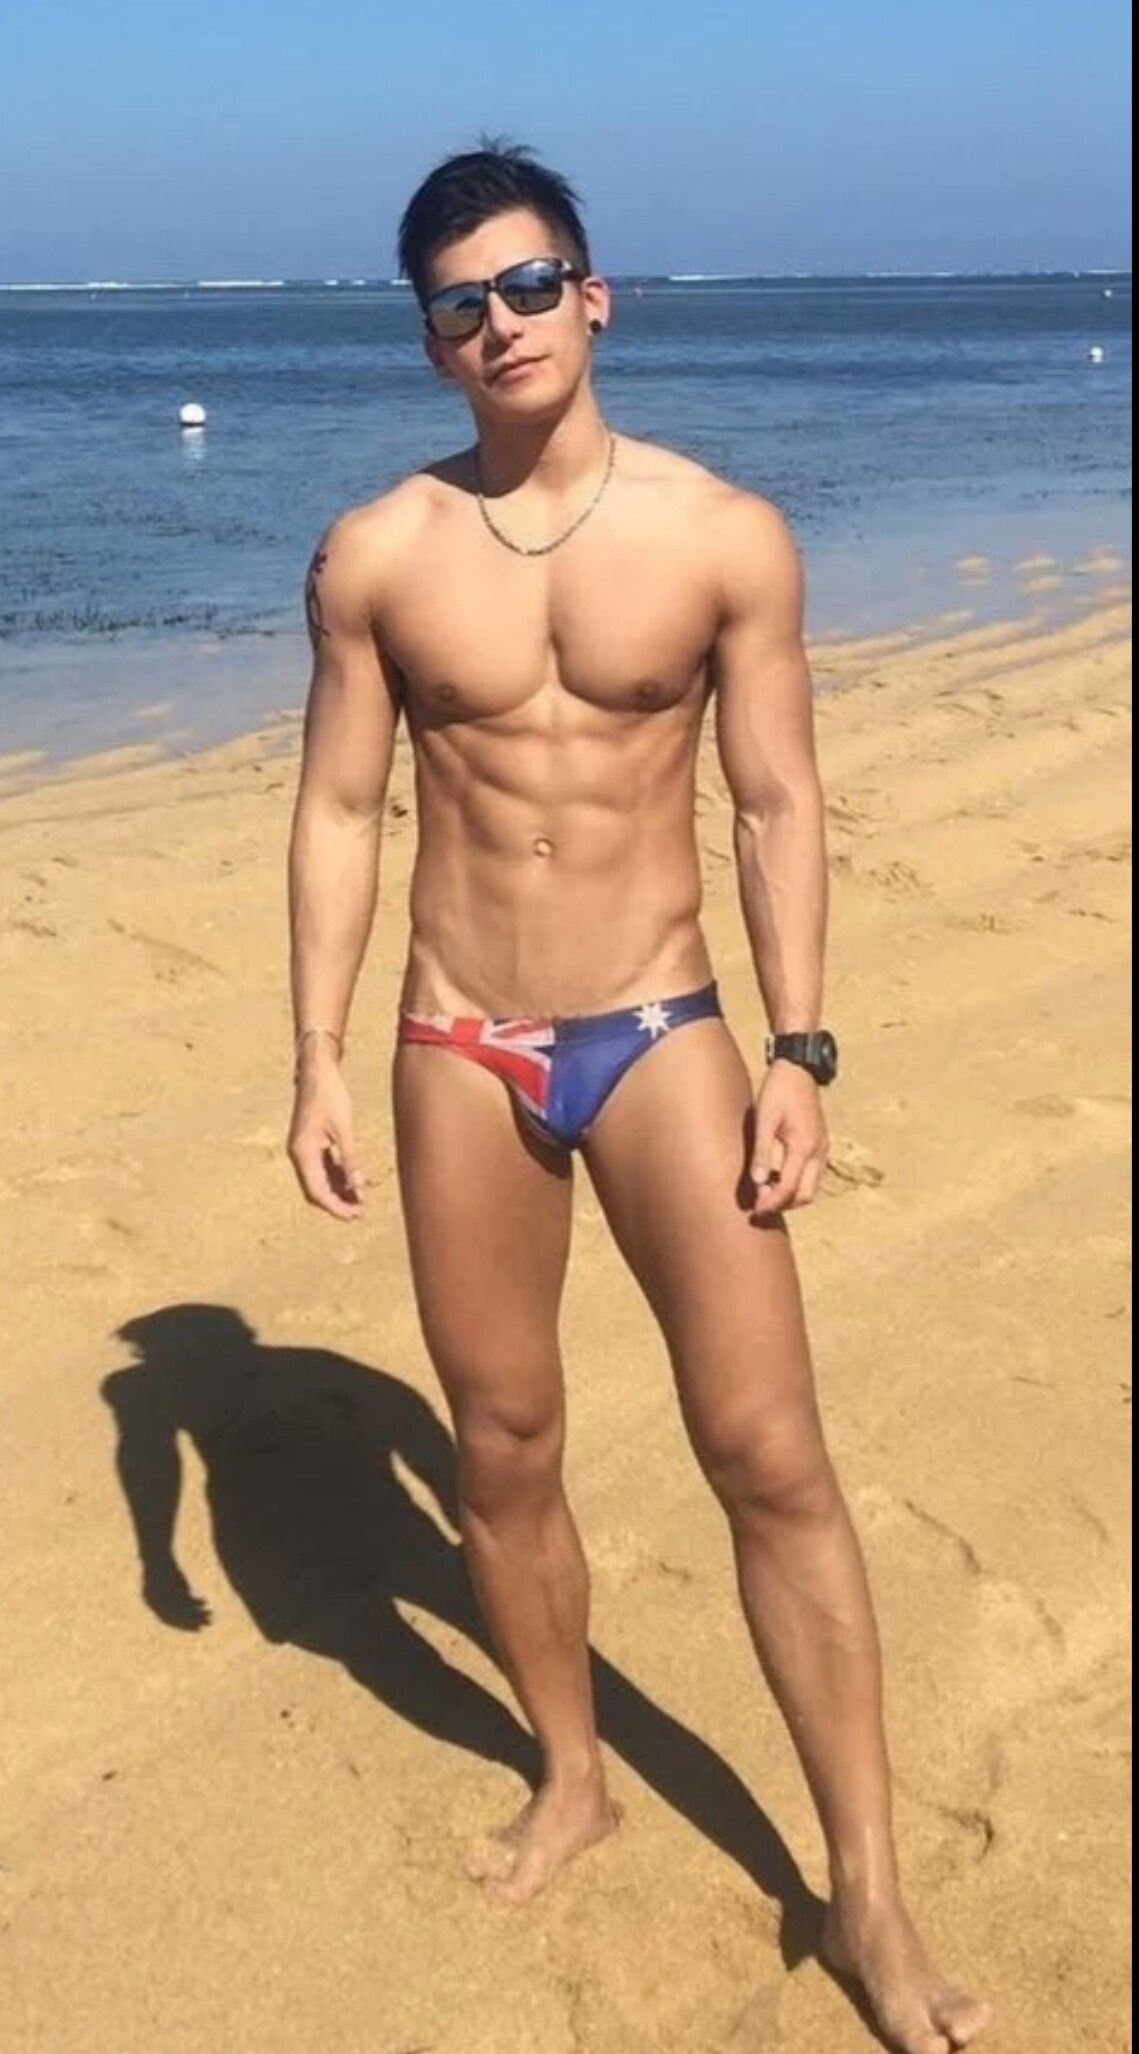 #Gayspeedoboy #Speedo #Speedos #Speedoboy #Speedolad #Speedoman #Swimsuit #Swimsuits